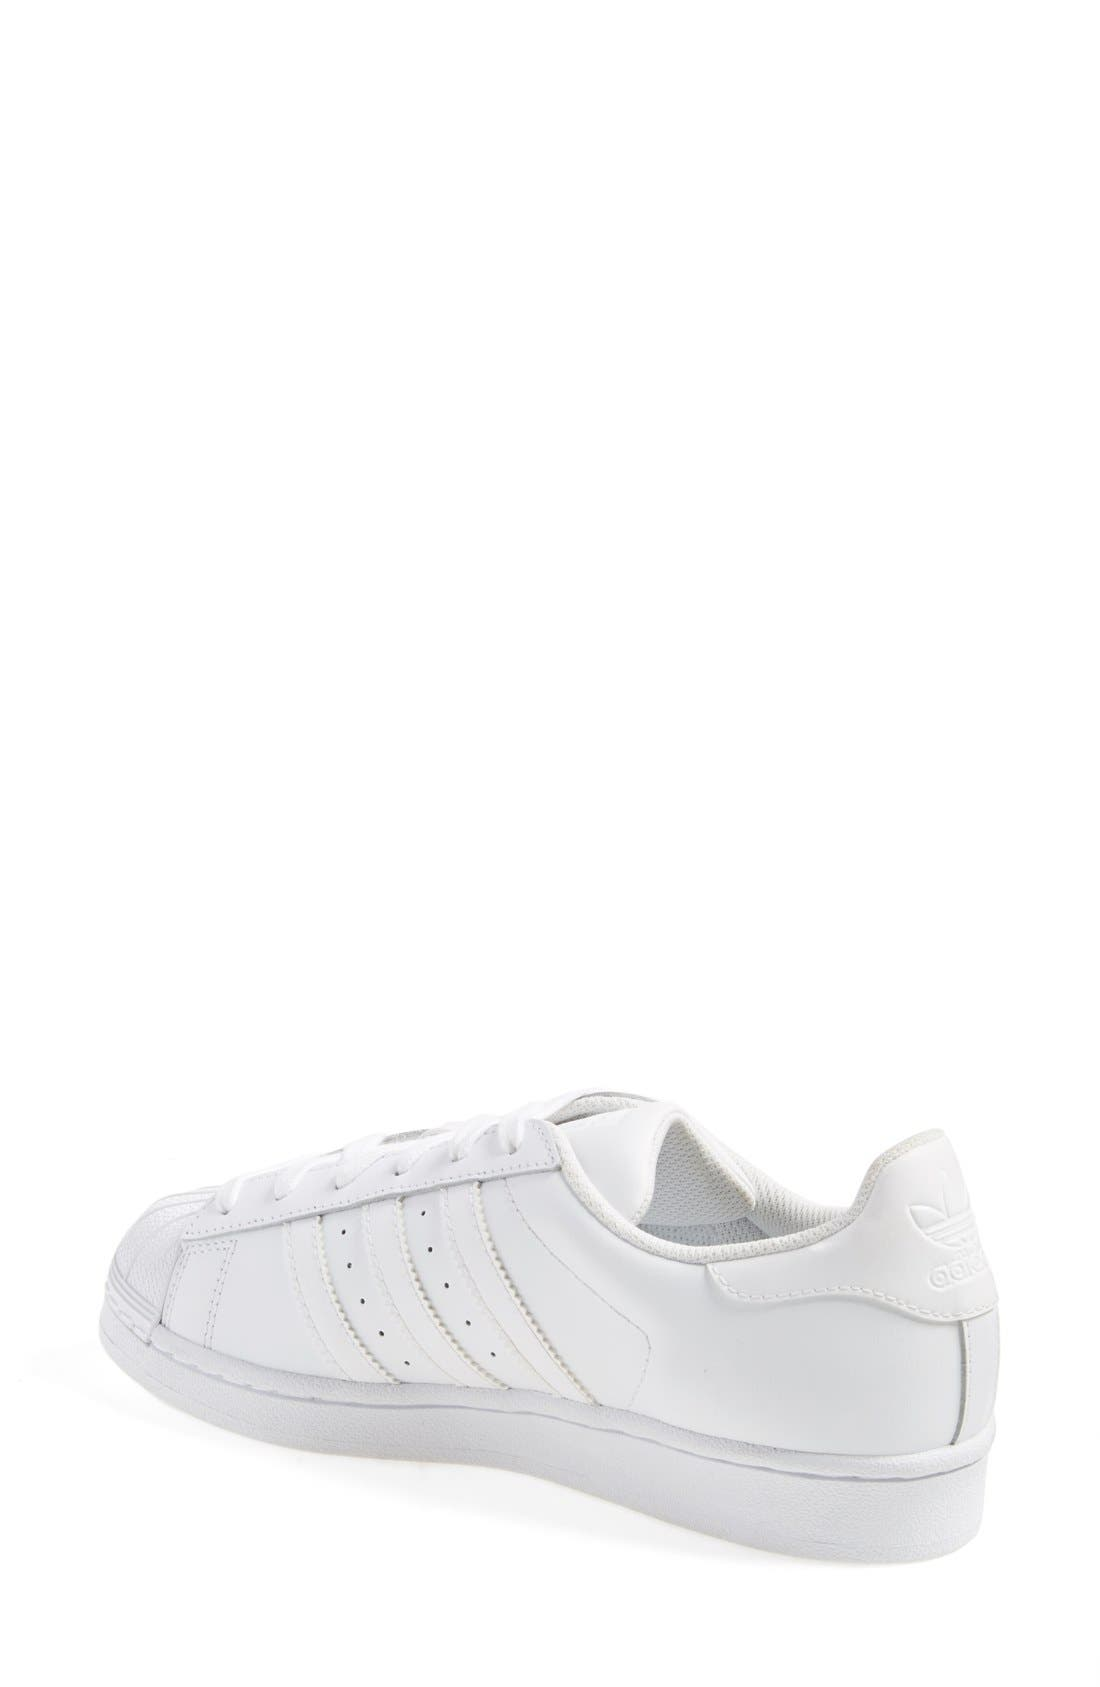 Superstar Sneaker,                             Alternate thumbnail 2, color,                             White